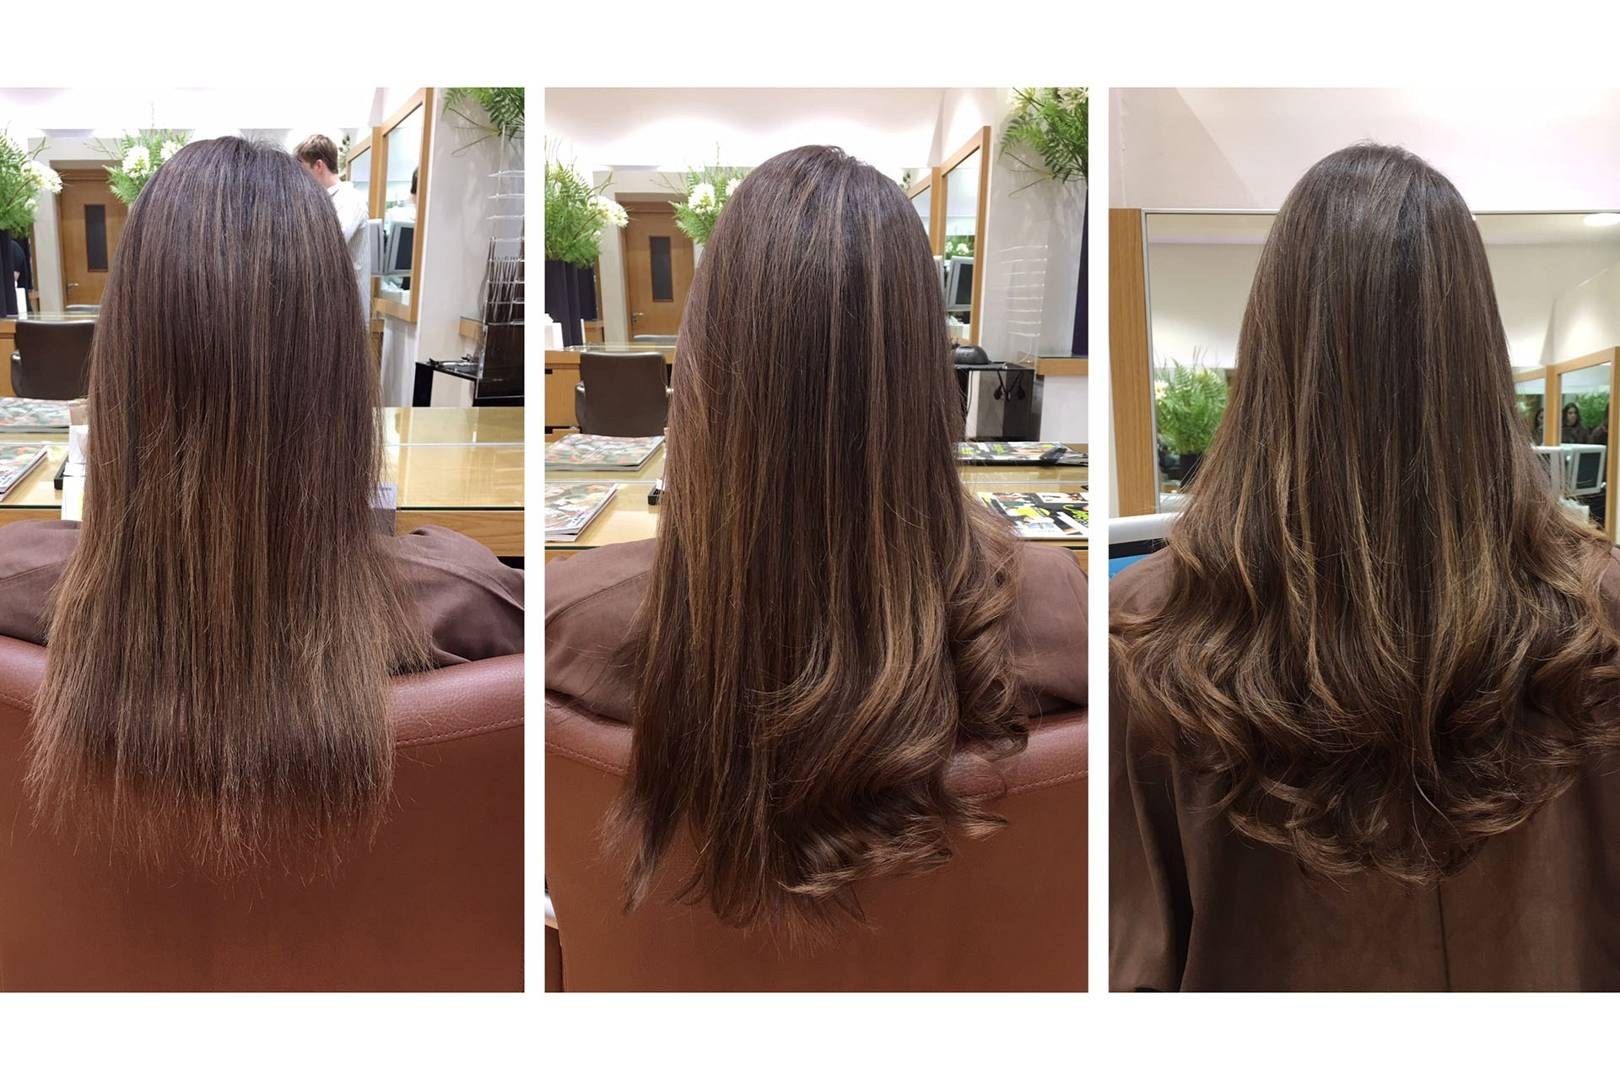 Hair extensions how to wear glue in extensions like celebrities hair extensions how to wear glue in extensions like celebrities glamour uk pmusecretfo Choice Image